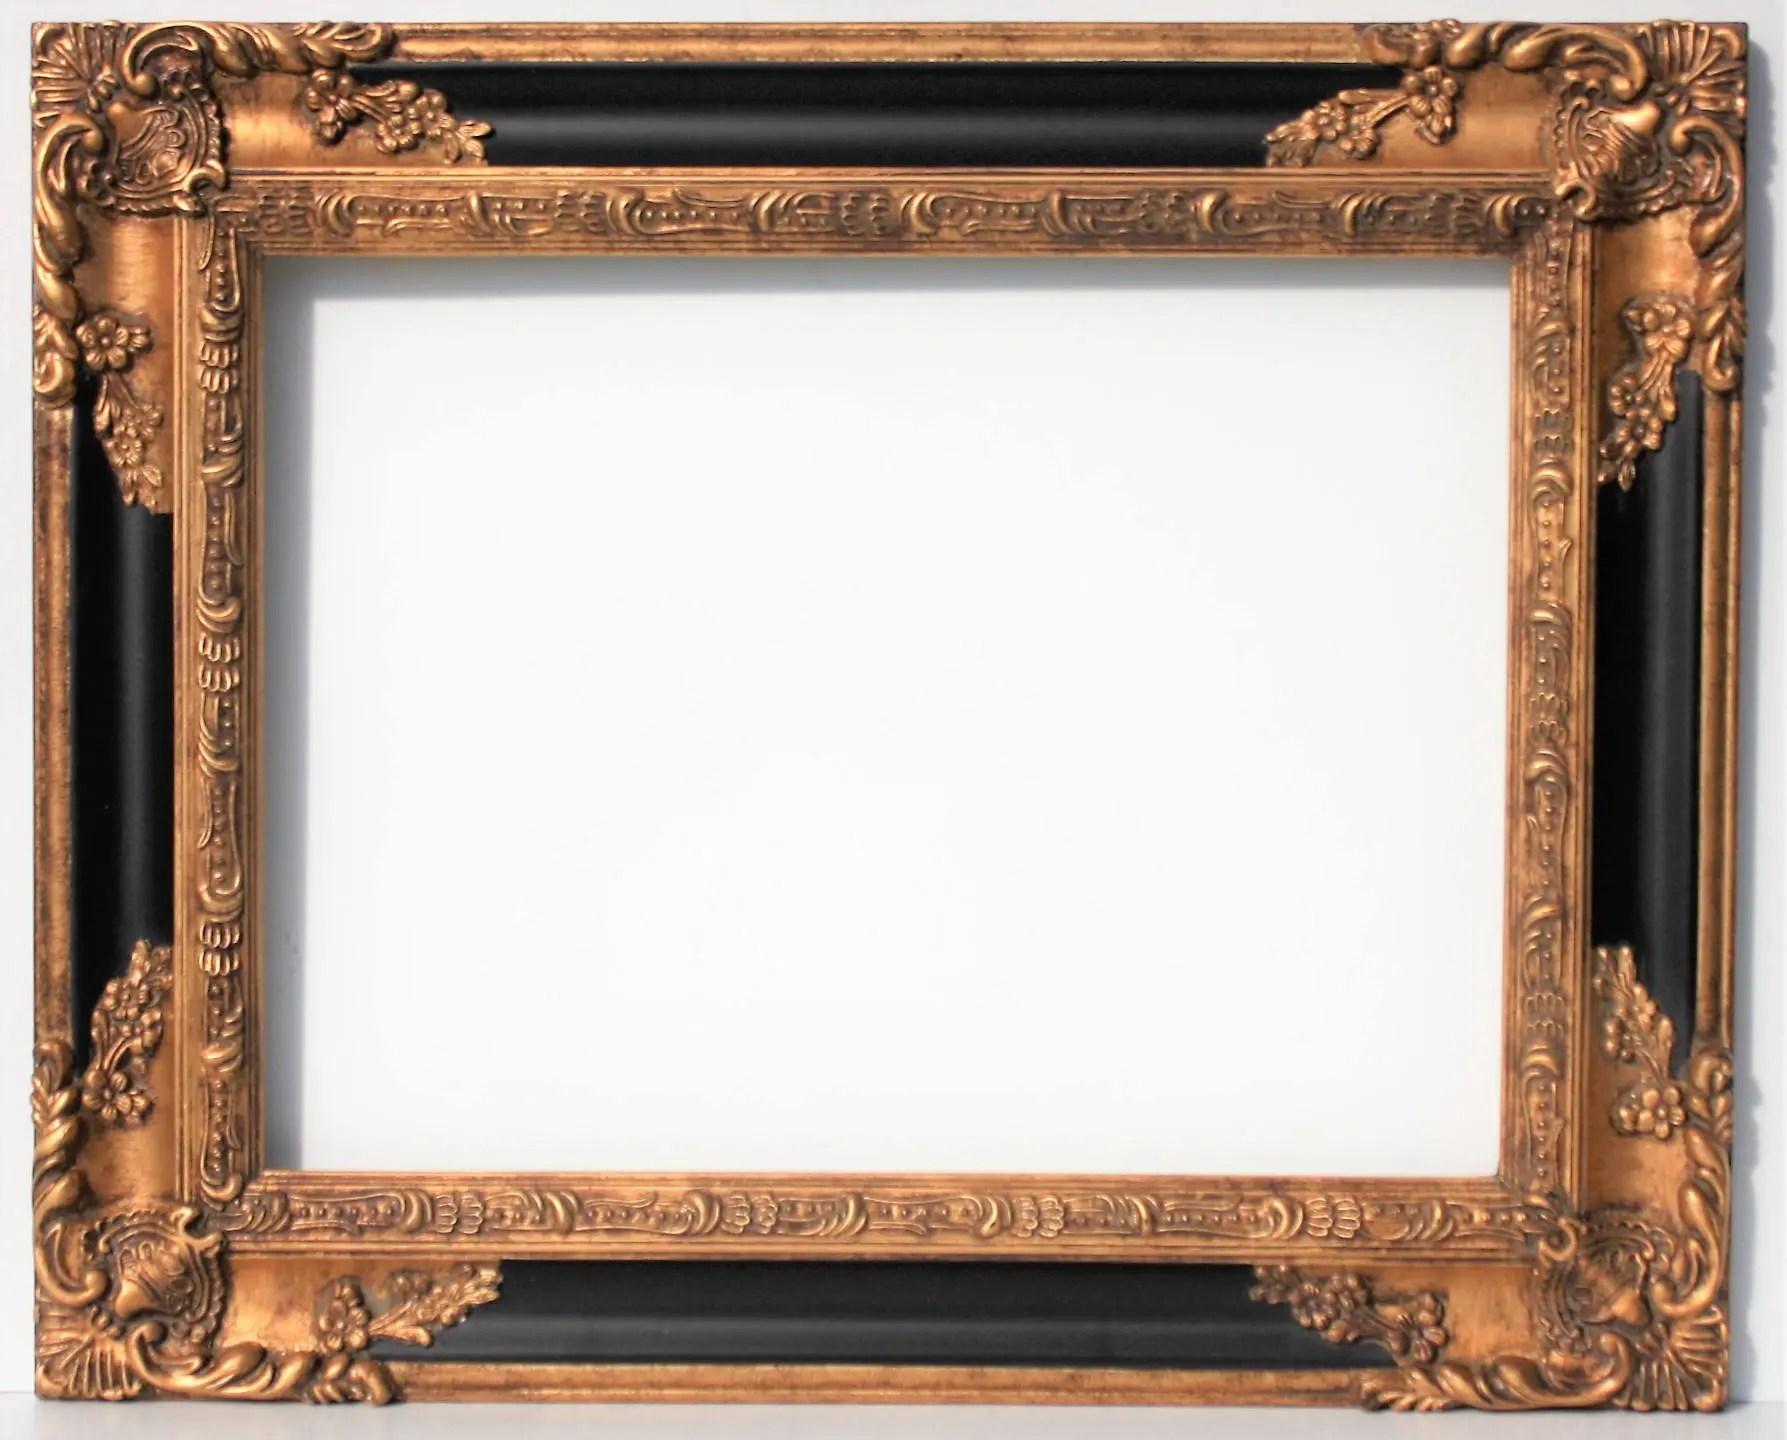 Large Gold Black Ornate Frames Baroque Wedding